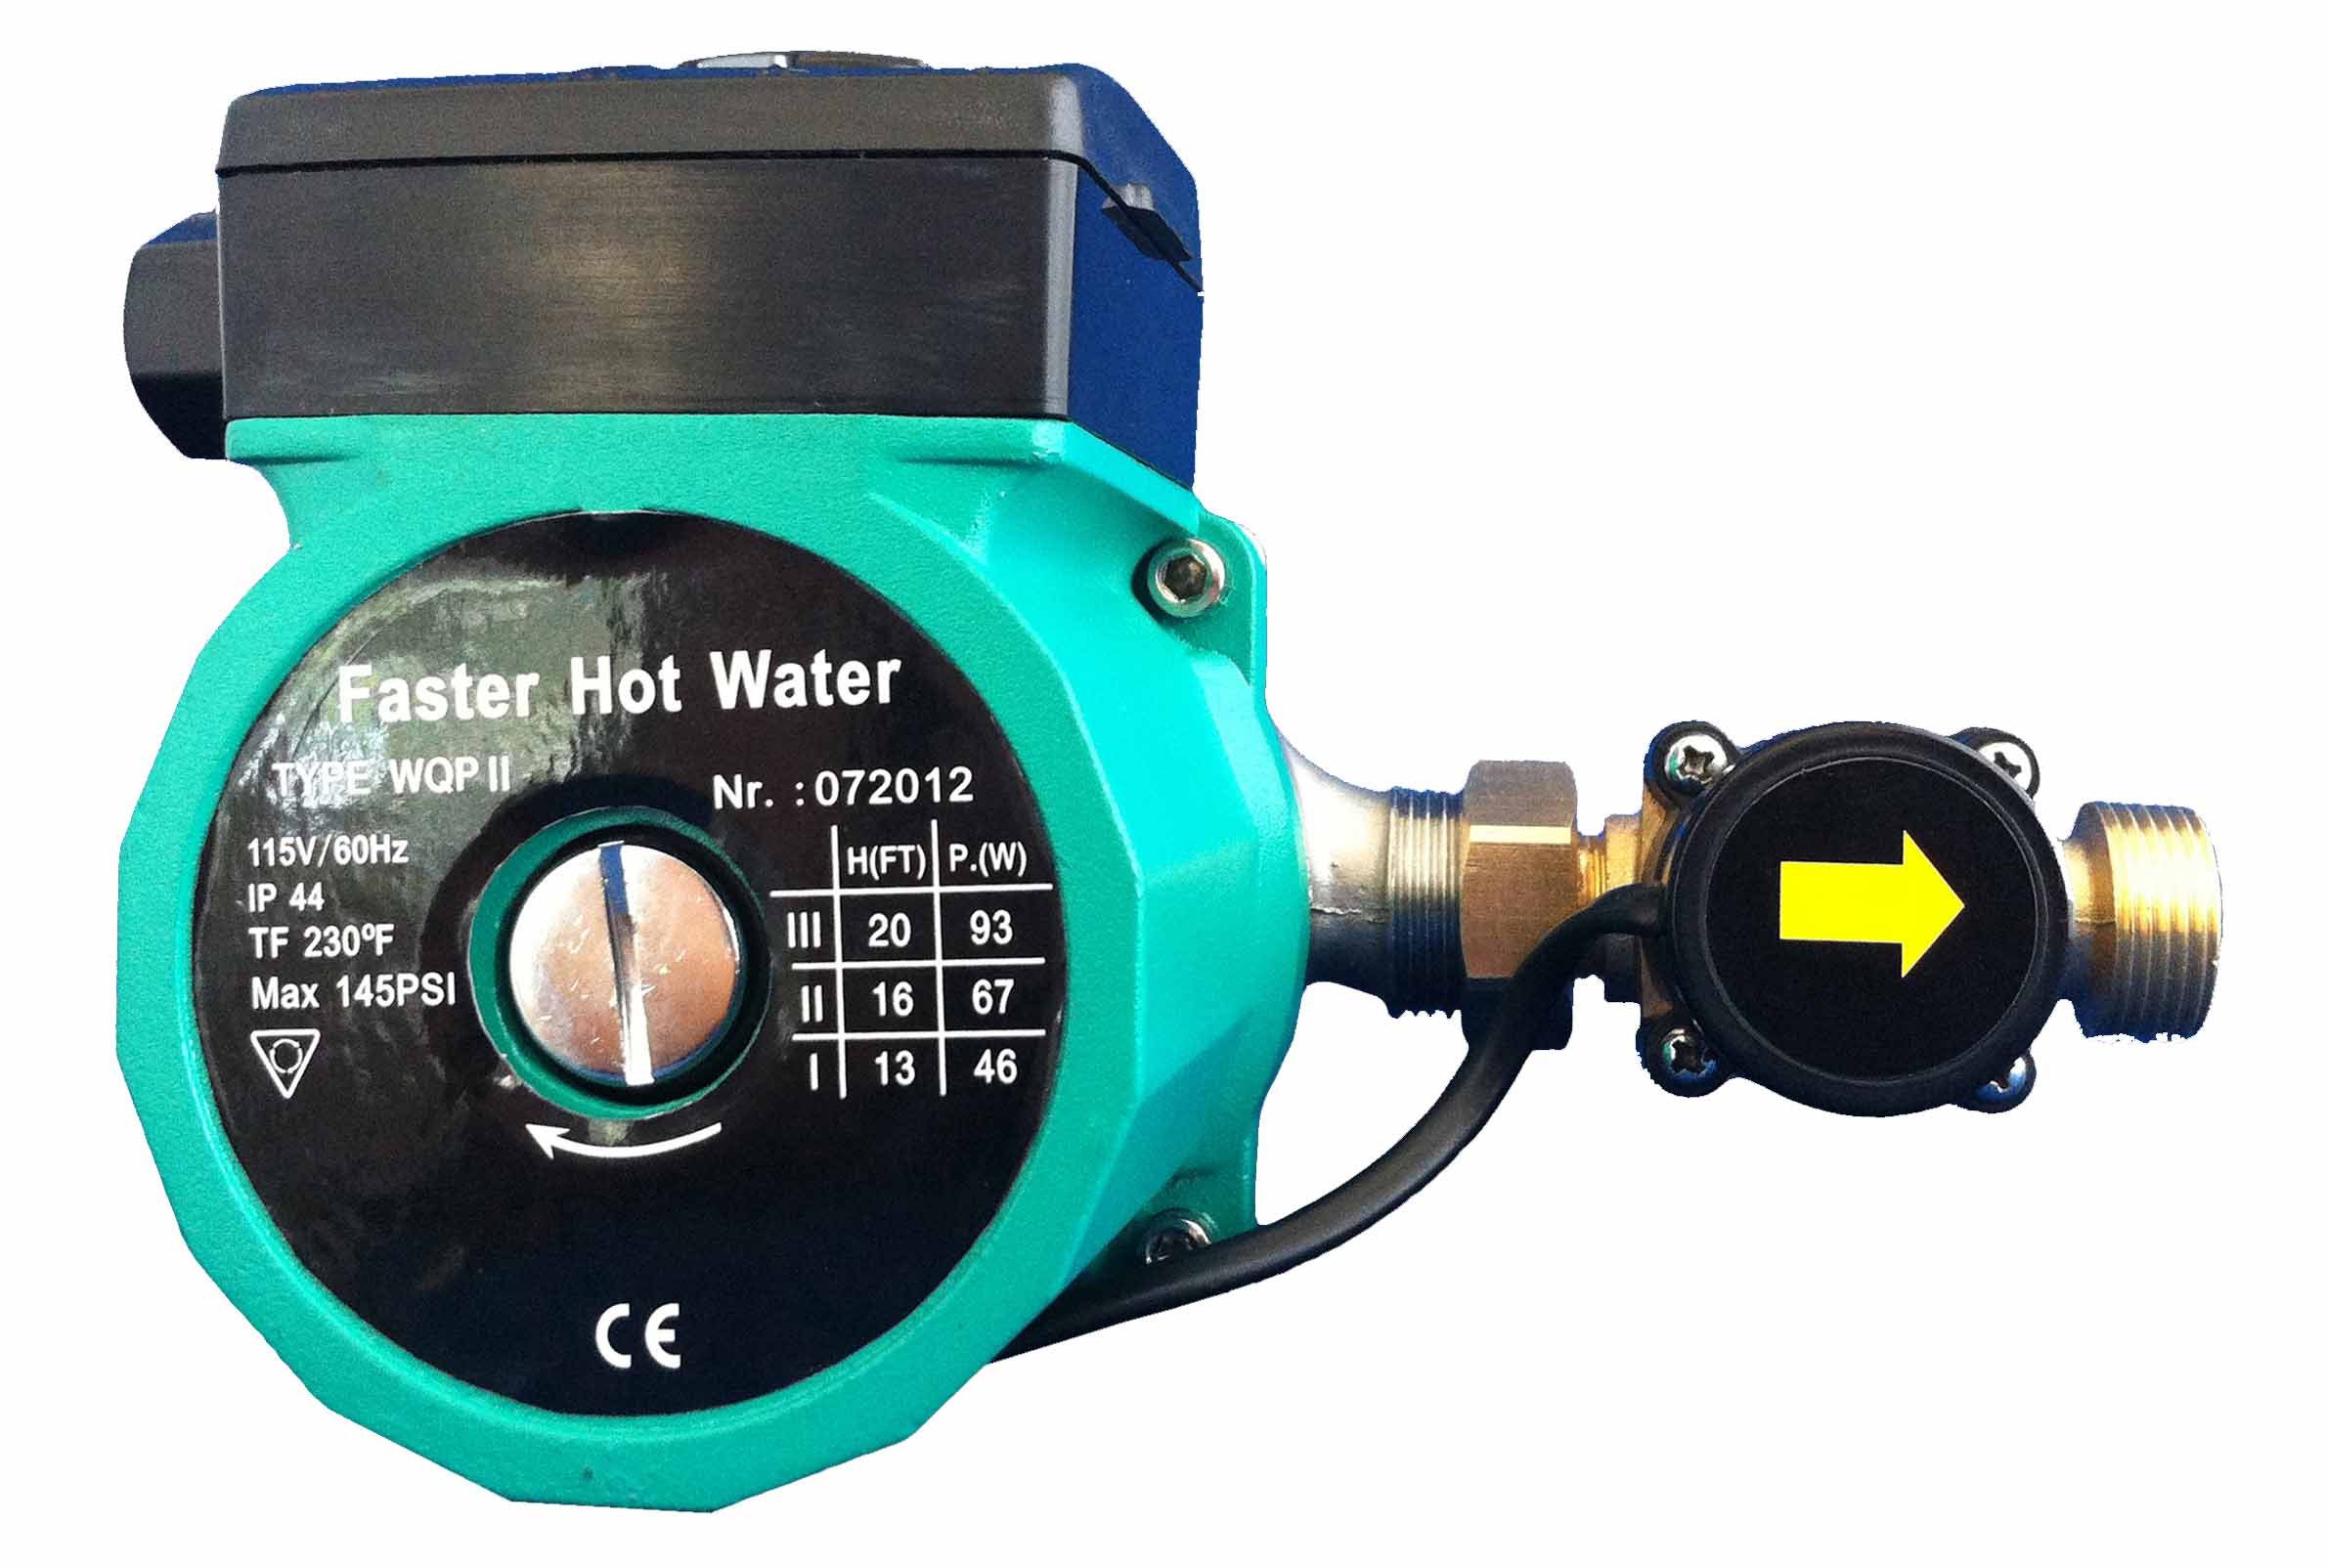 Hot water circ pump image